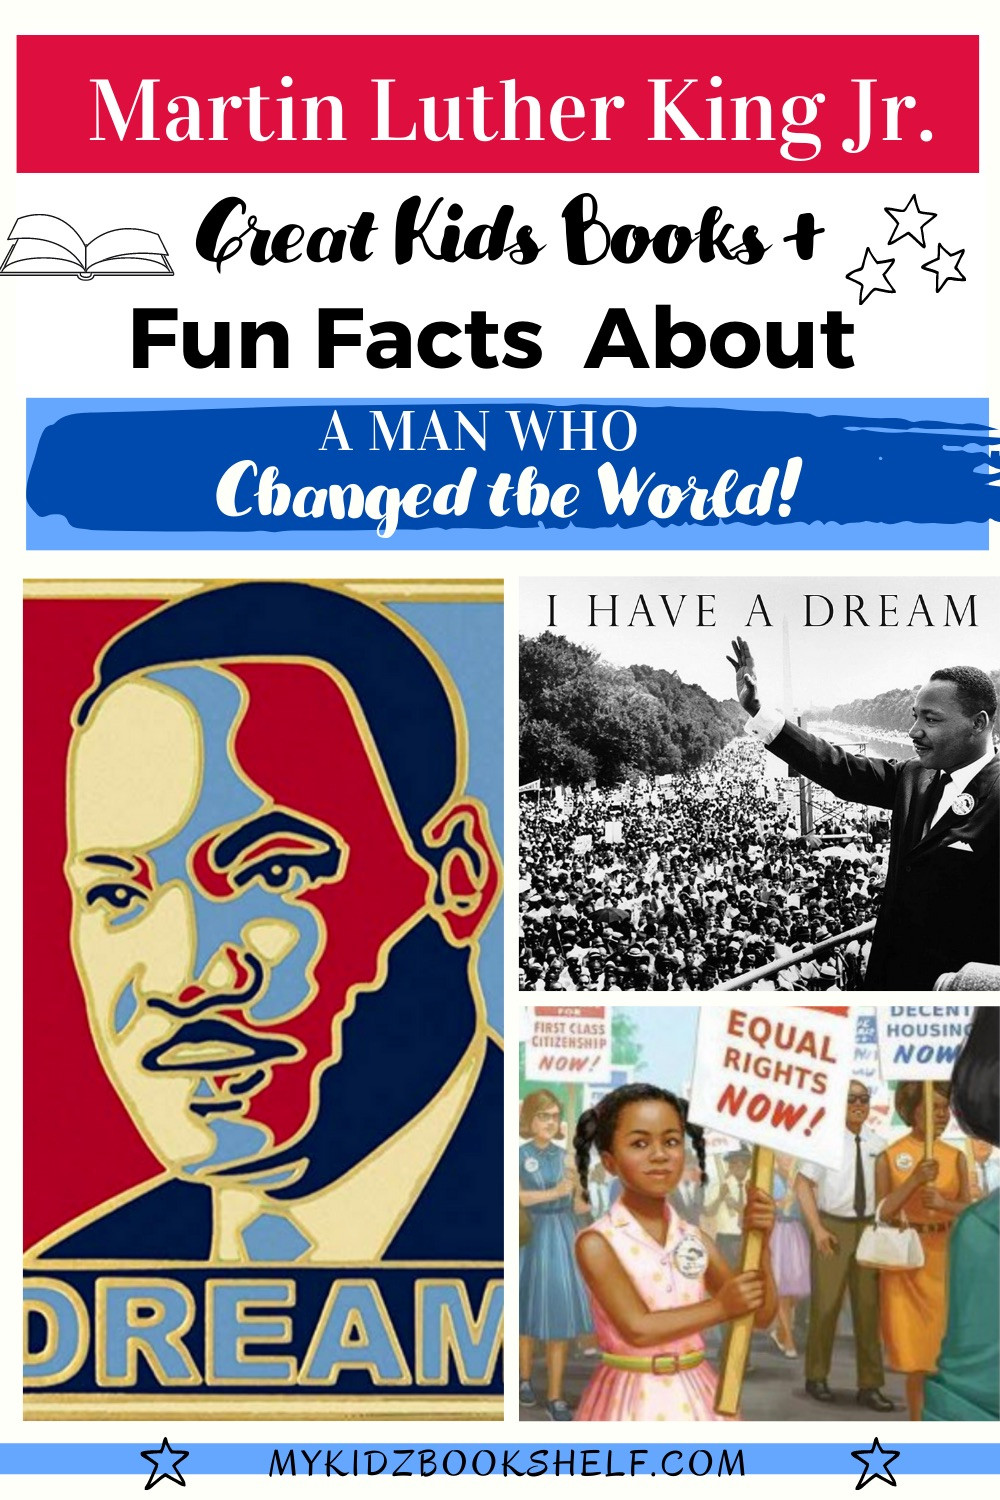 Martin Luther King Jr. Pinterest Pin with images of I Have a Dream speech, girl holding sign and marching